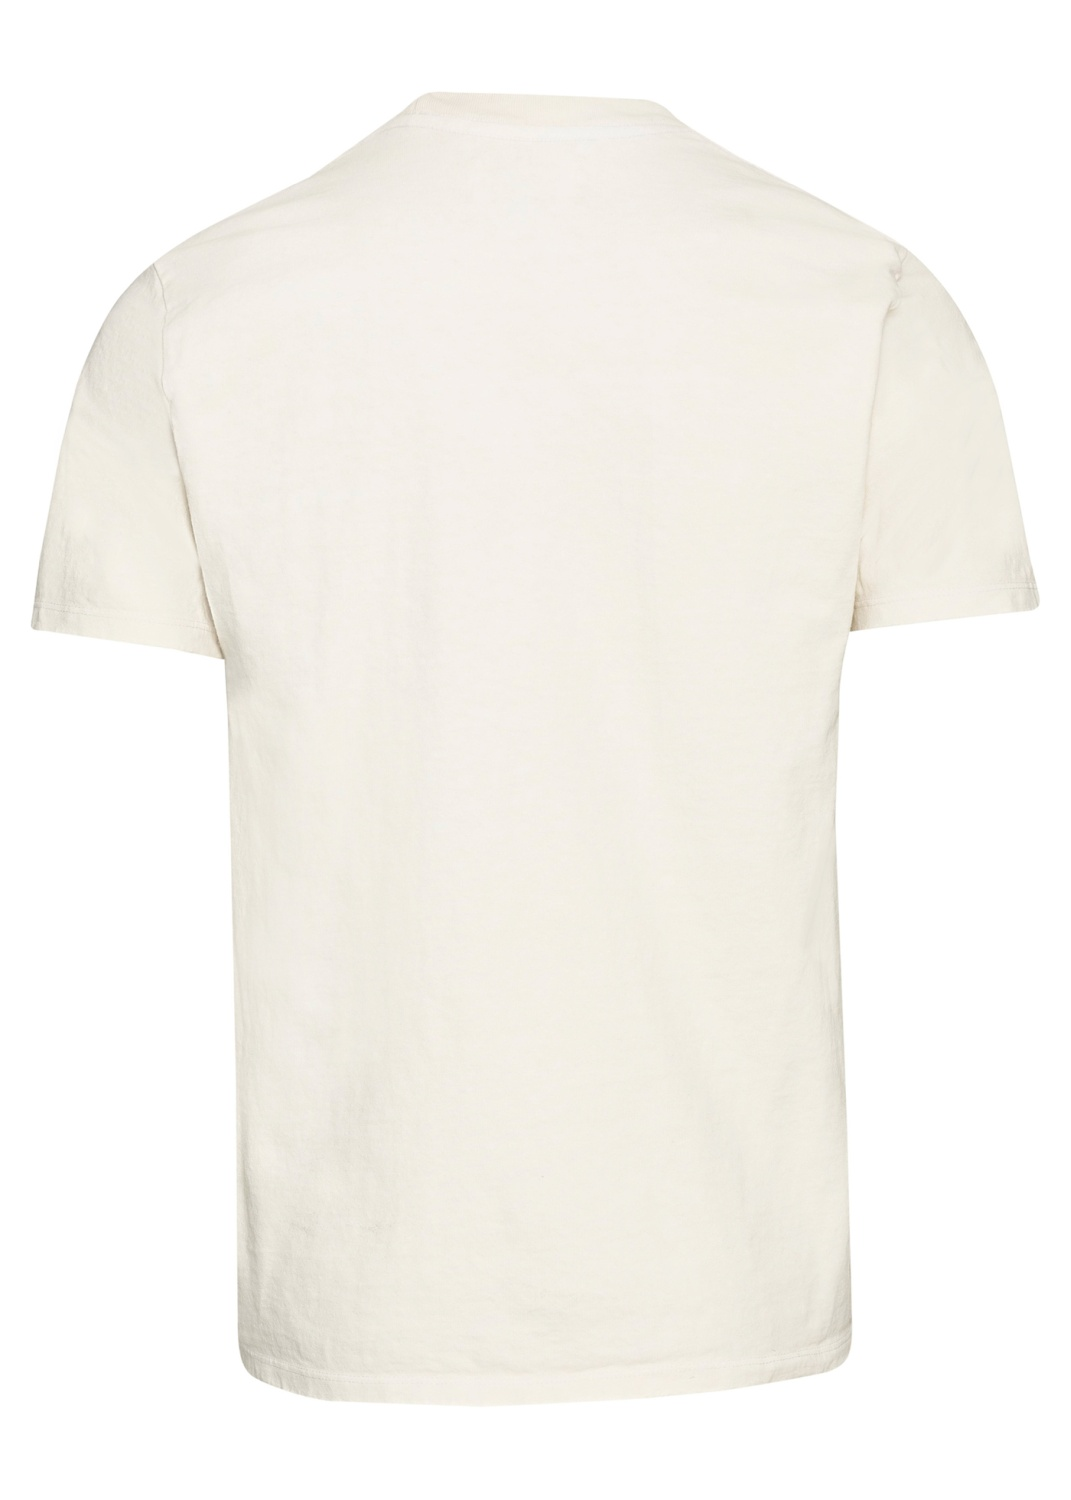 Classic Pocket Tee image number 1